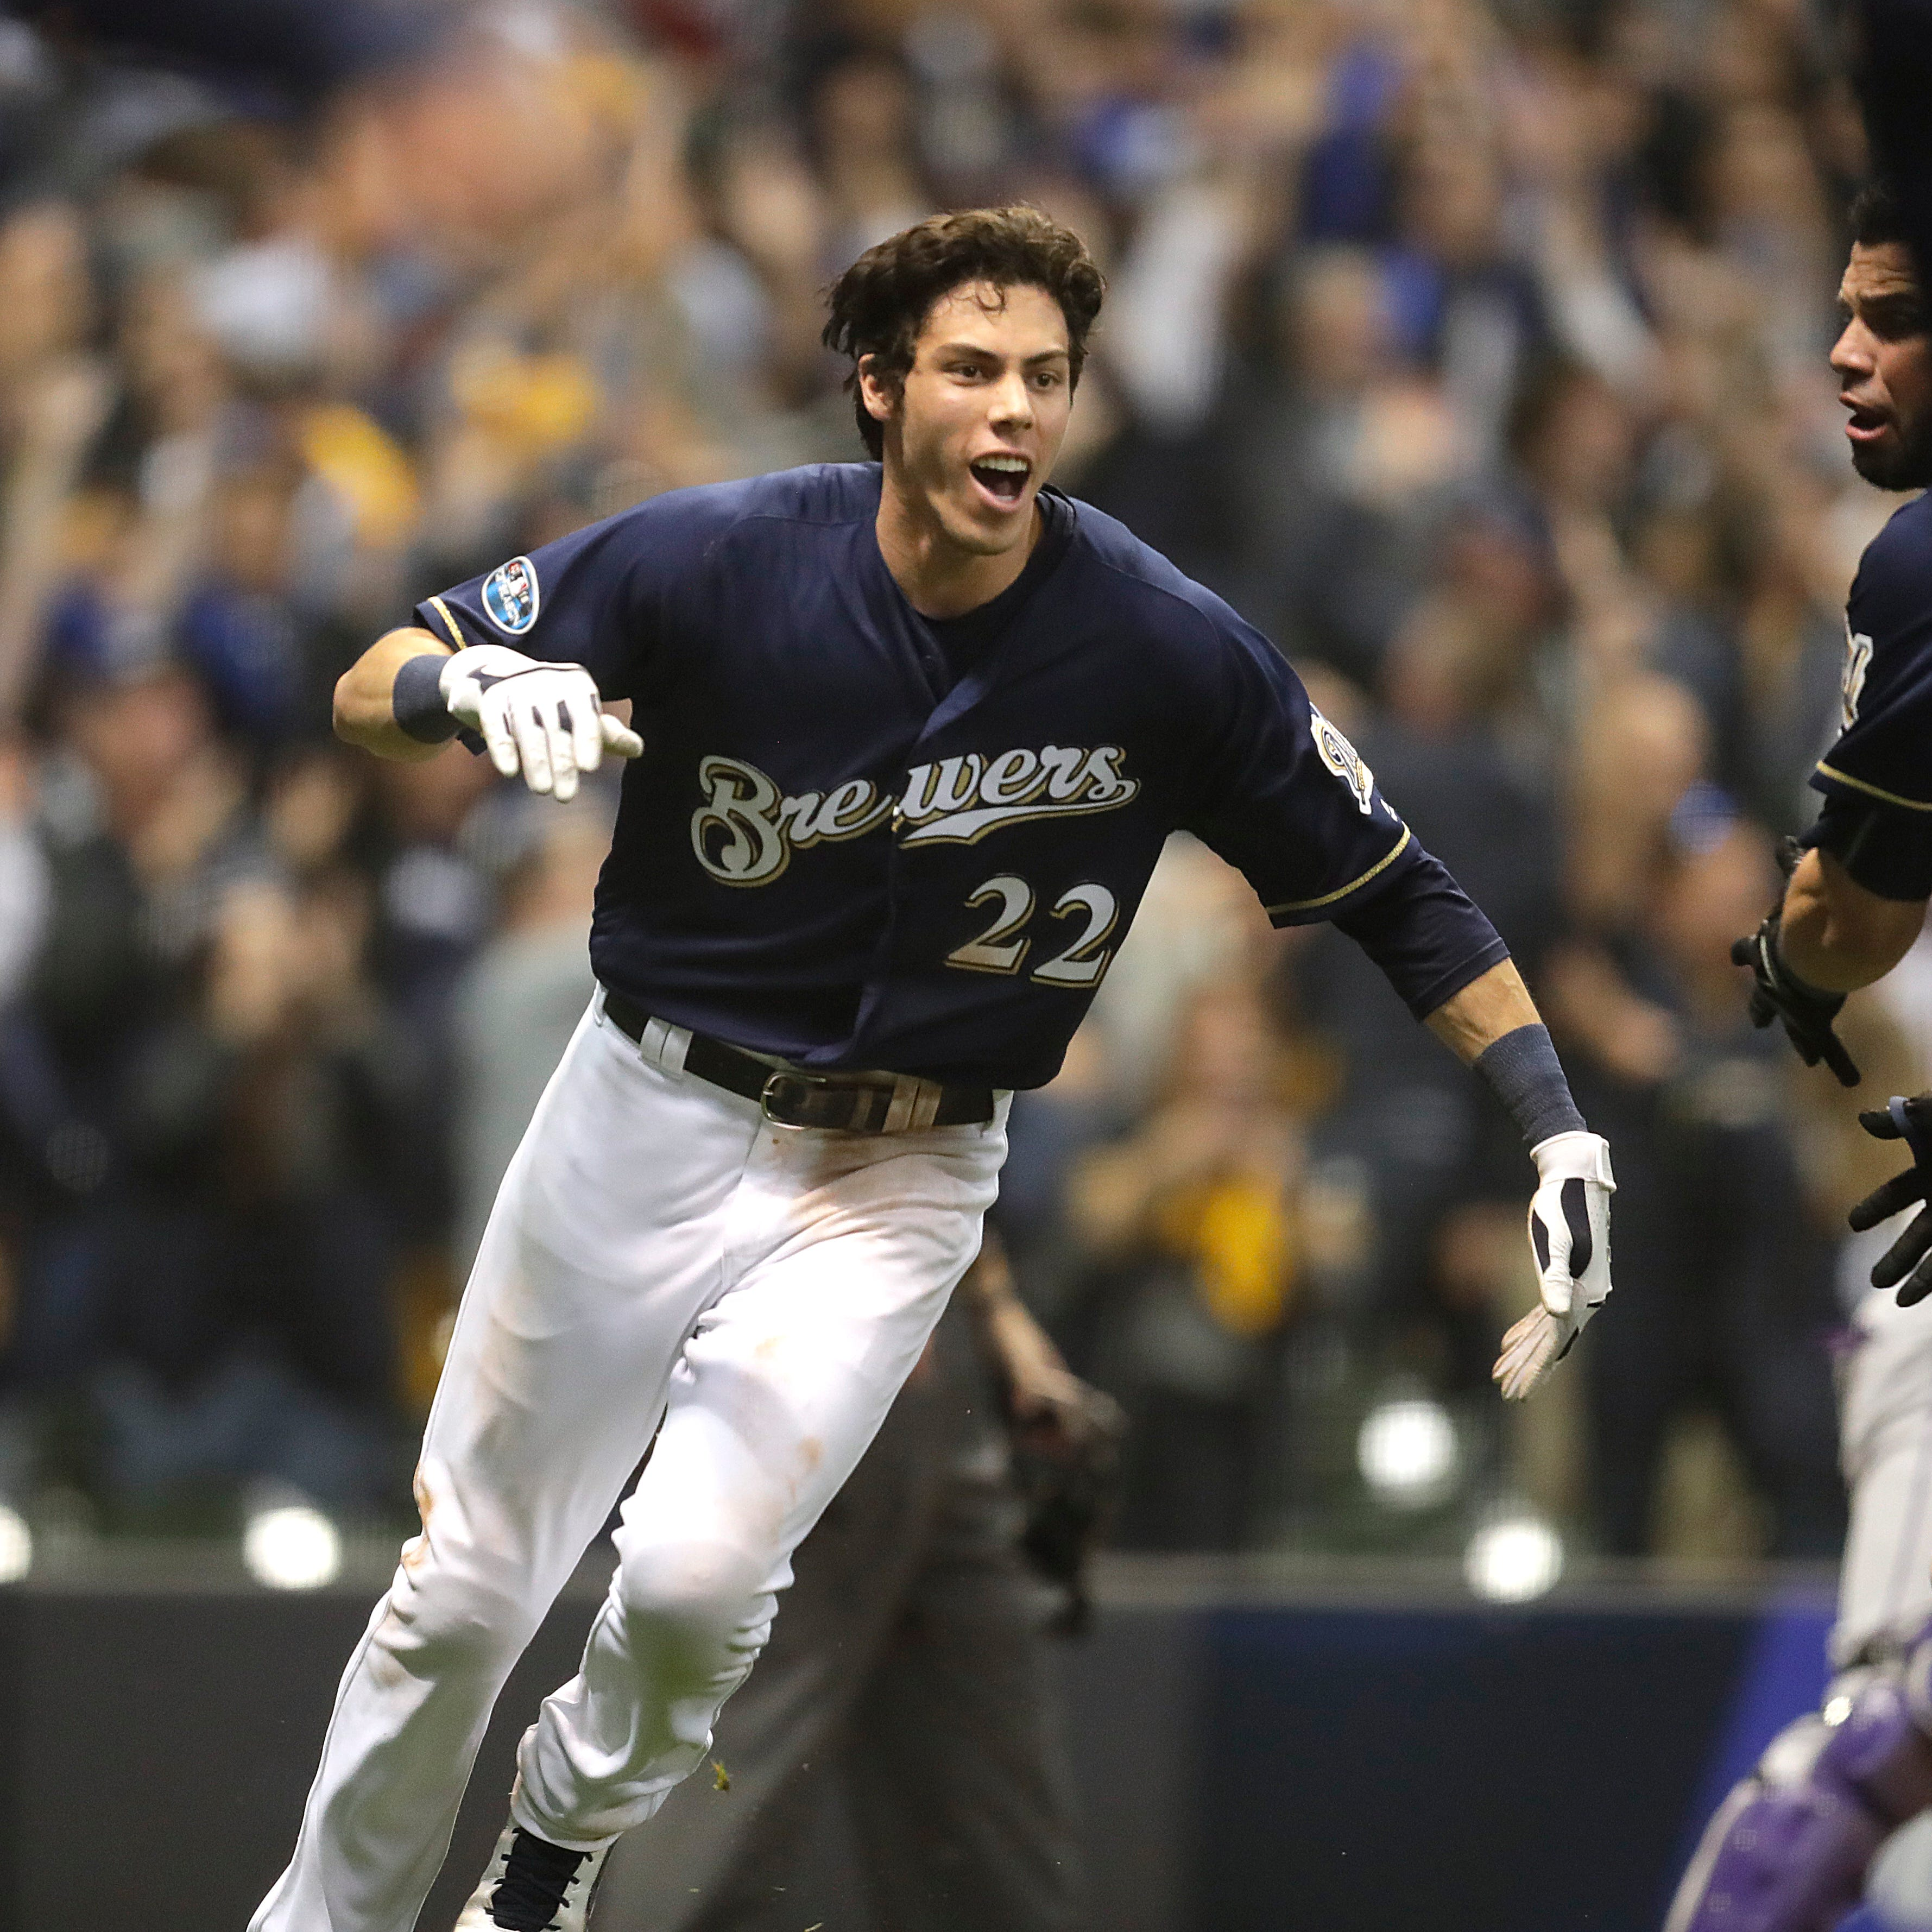 New songs about Milwaukee Brewers, Christian Yelich, Front Row Amy: Vote for your favorite